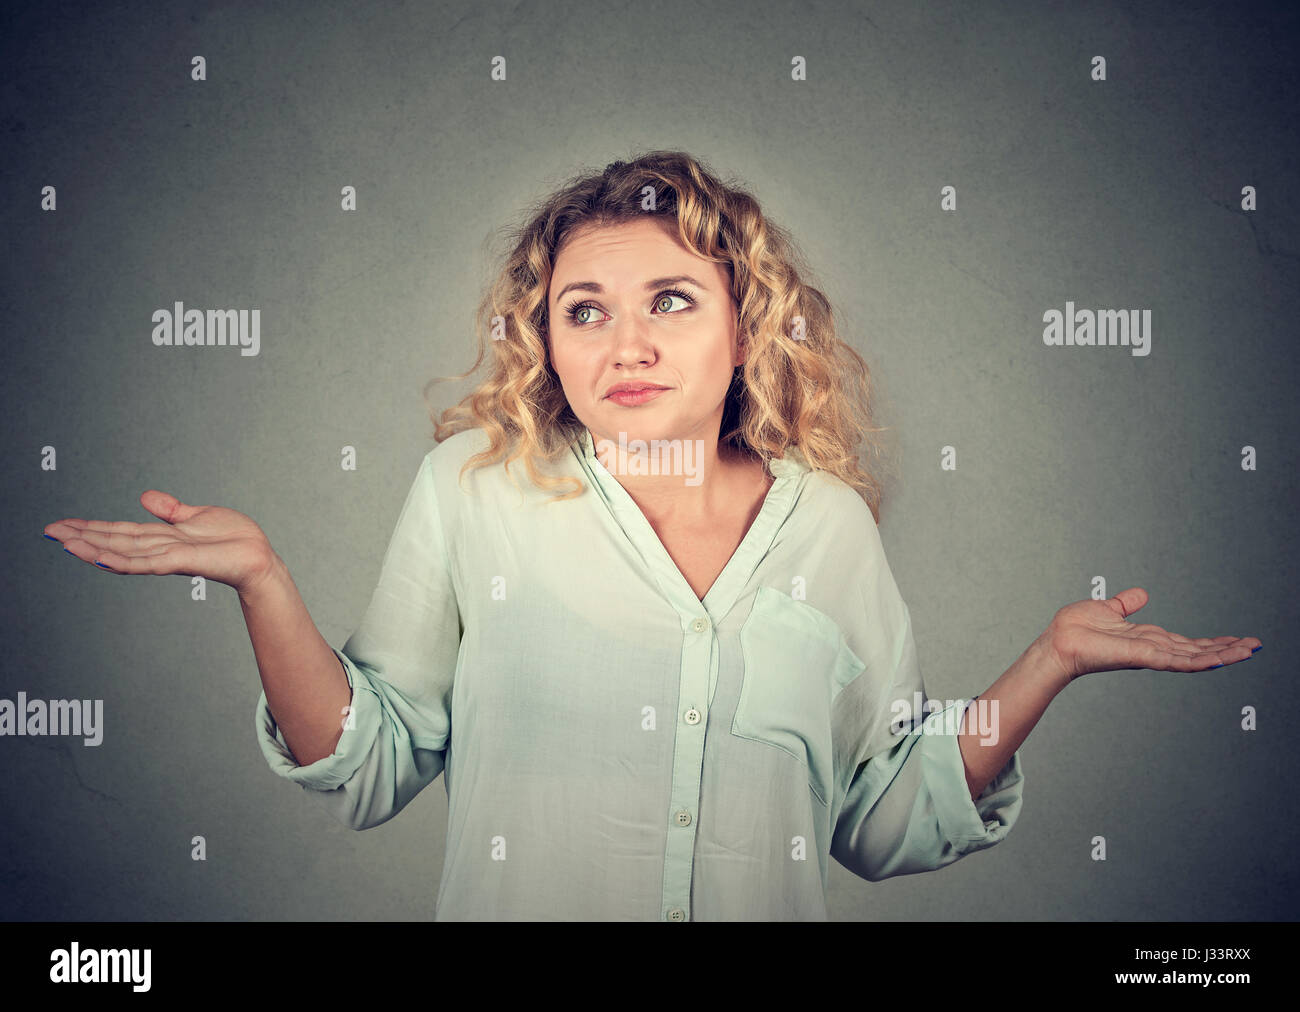 Portrait dumb looking woman arms out shrugs shoulders who cares so what I don't know isolated on gray wall background. - Stock Image